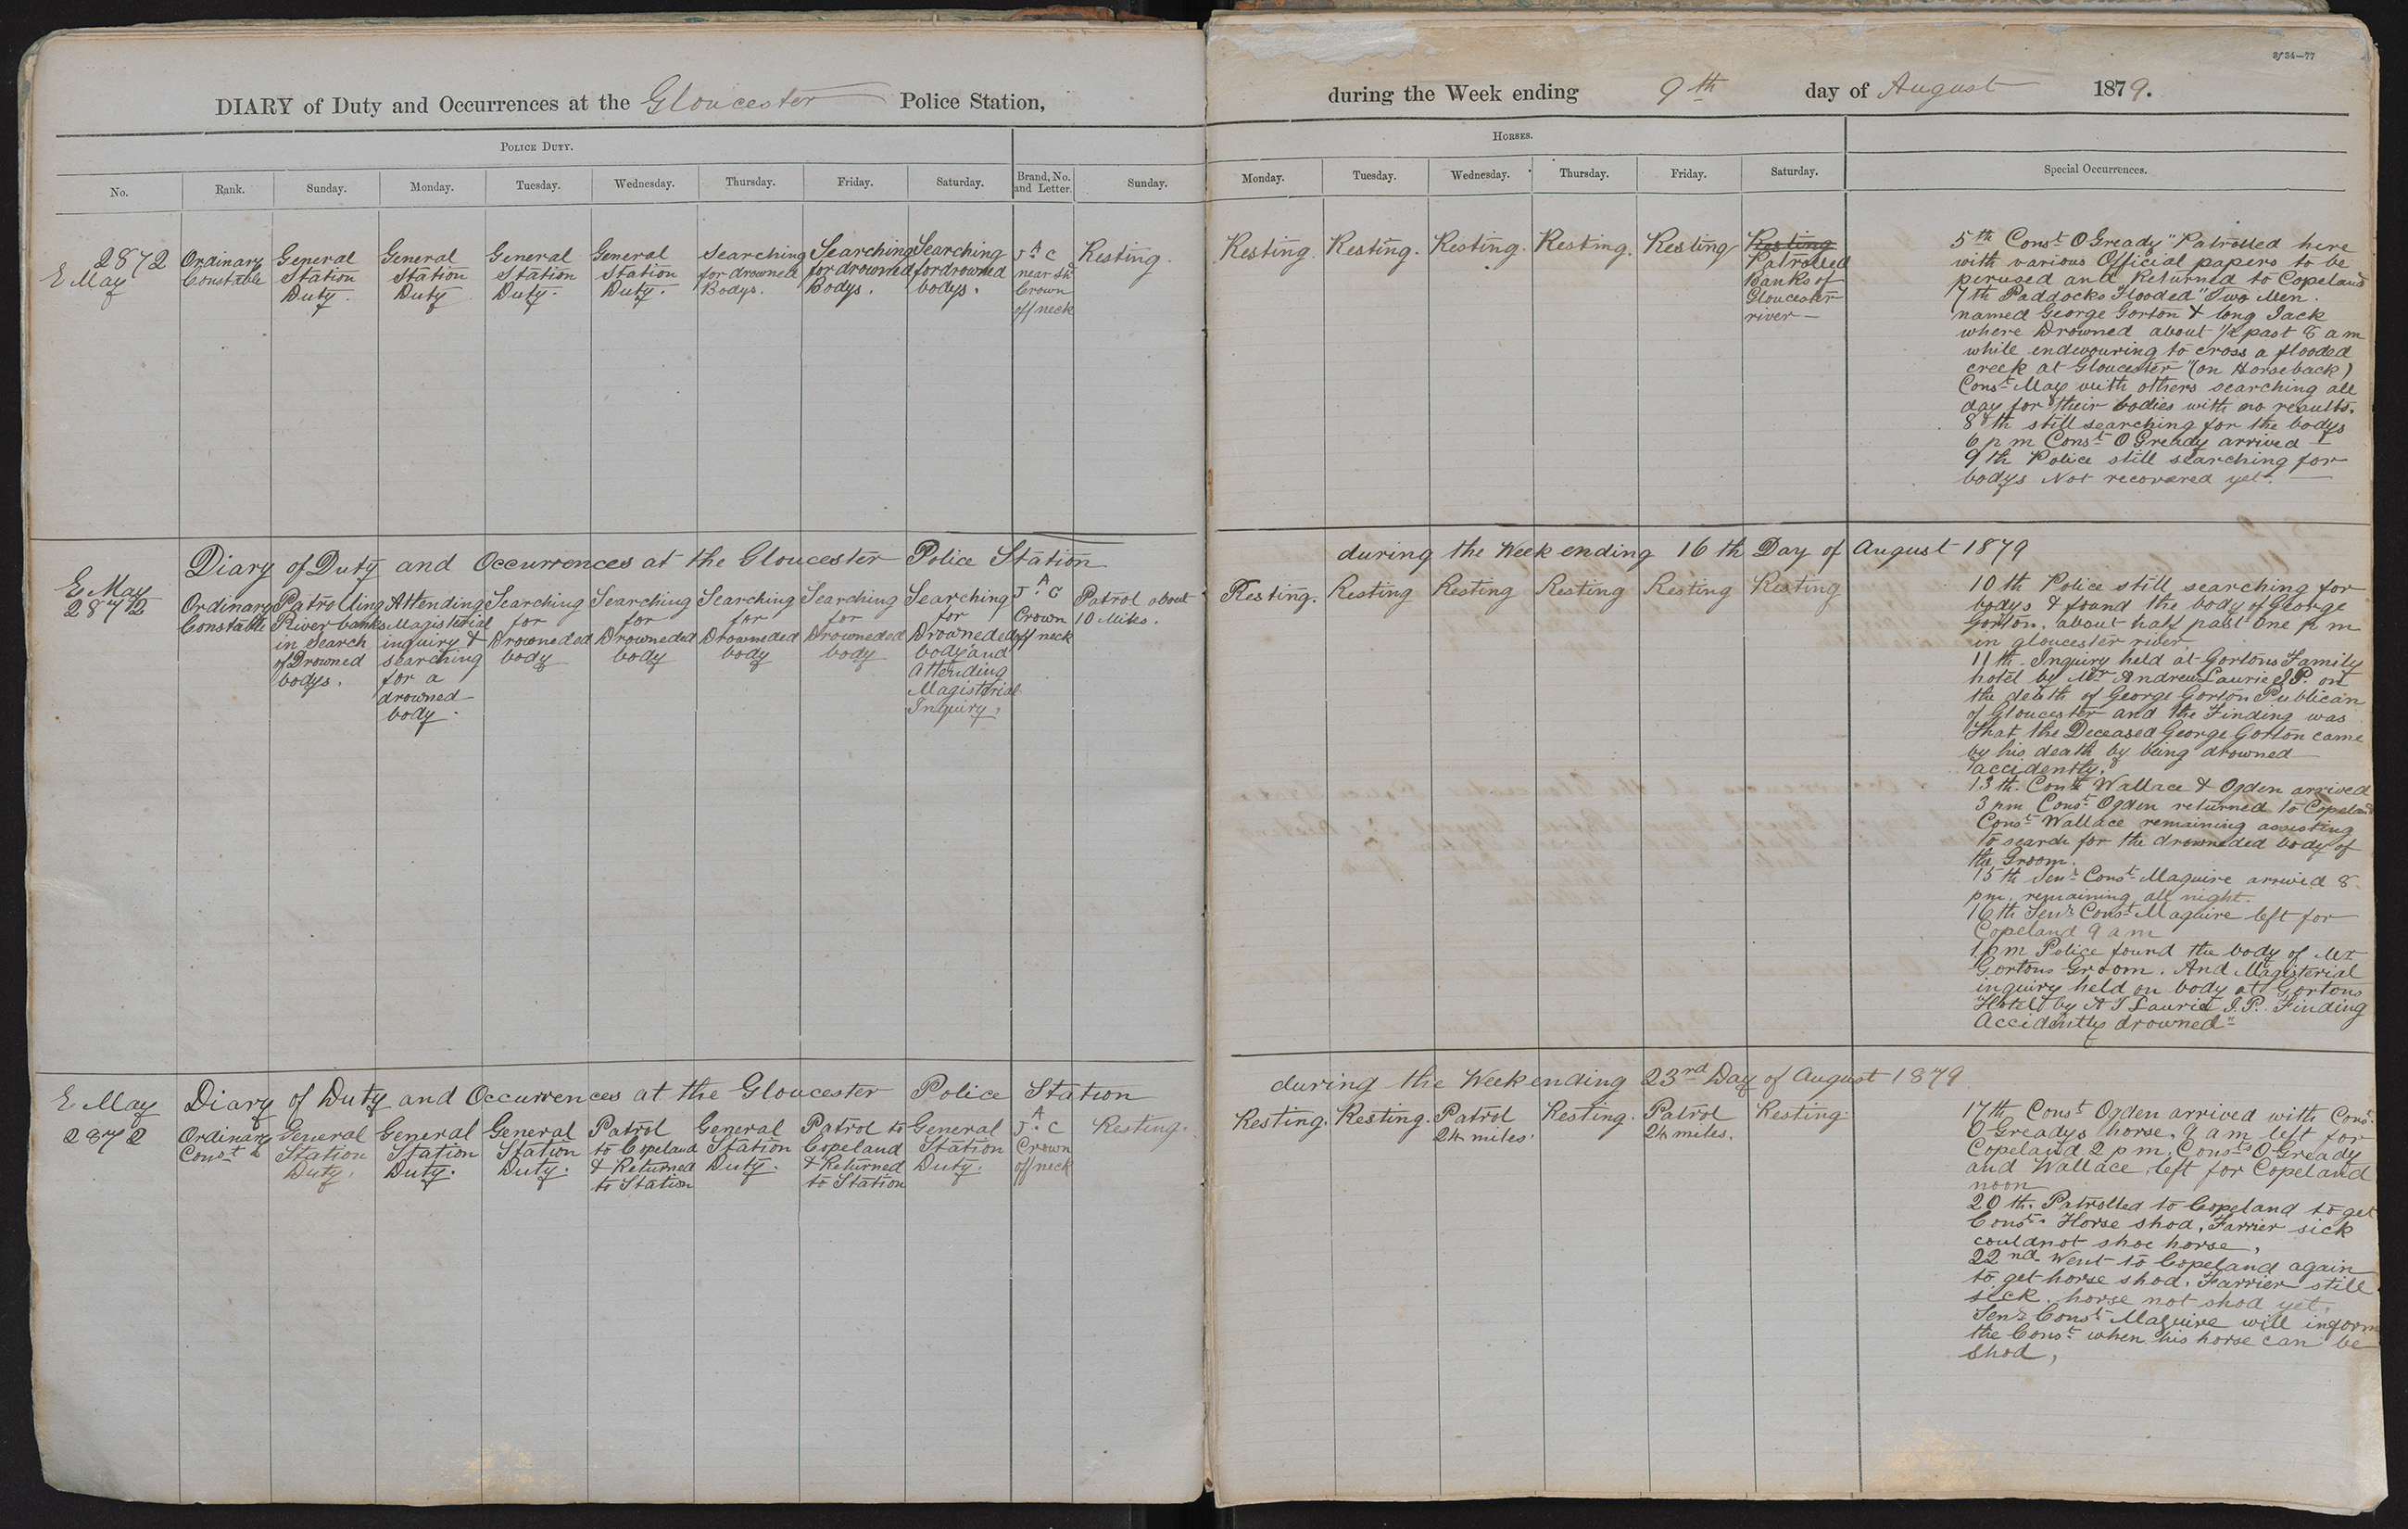 Diary of duty and occurrences at the Gloucester Police Station during the week ending the 9th day of August 1879